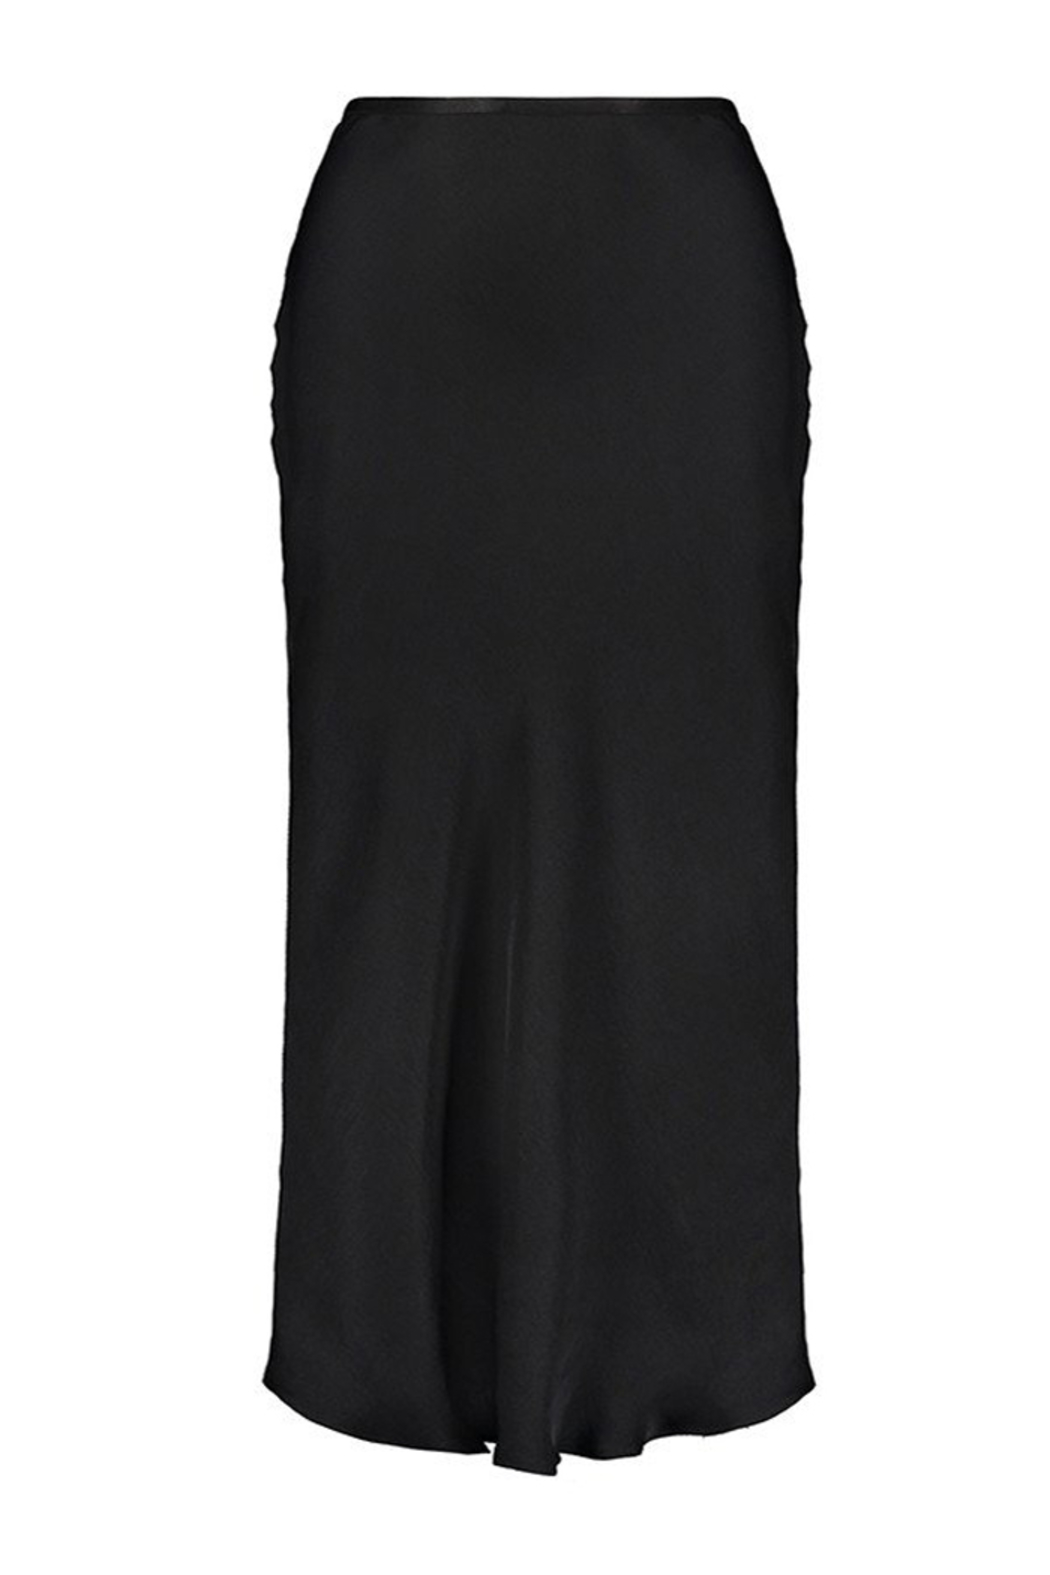 David Lerner  BIAS MIDI SKIRT - Back Cropped Image